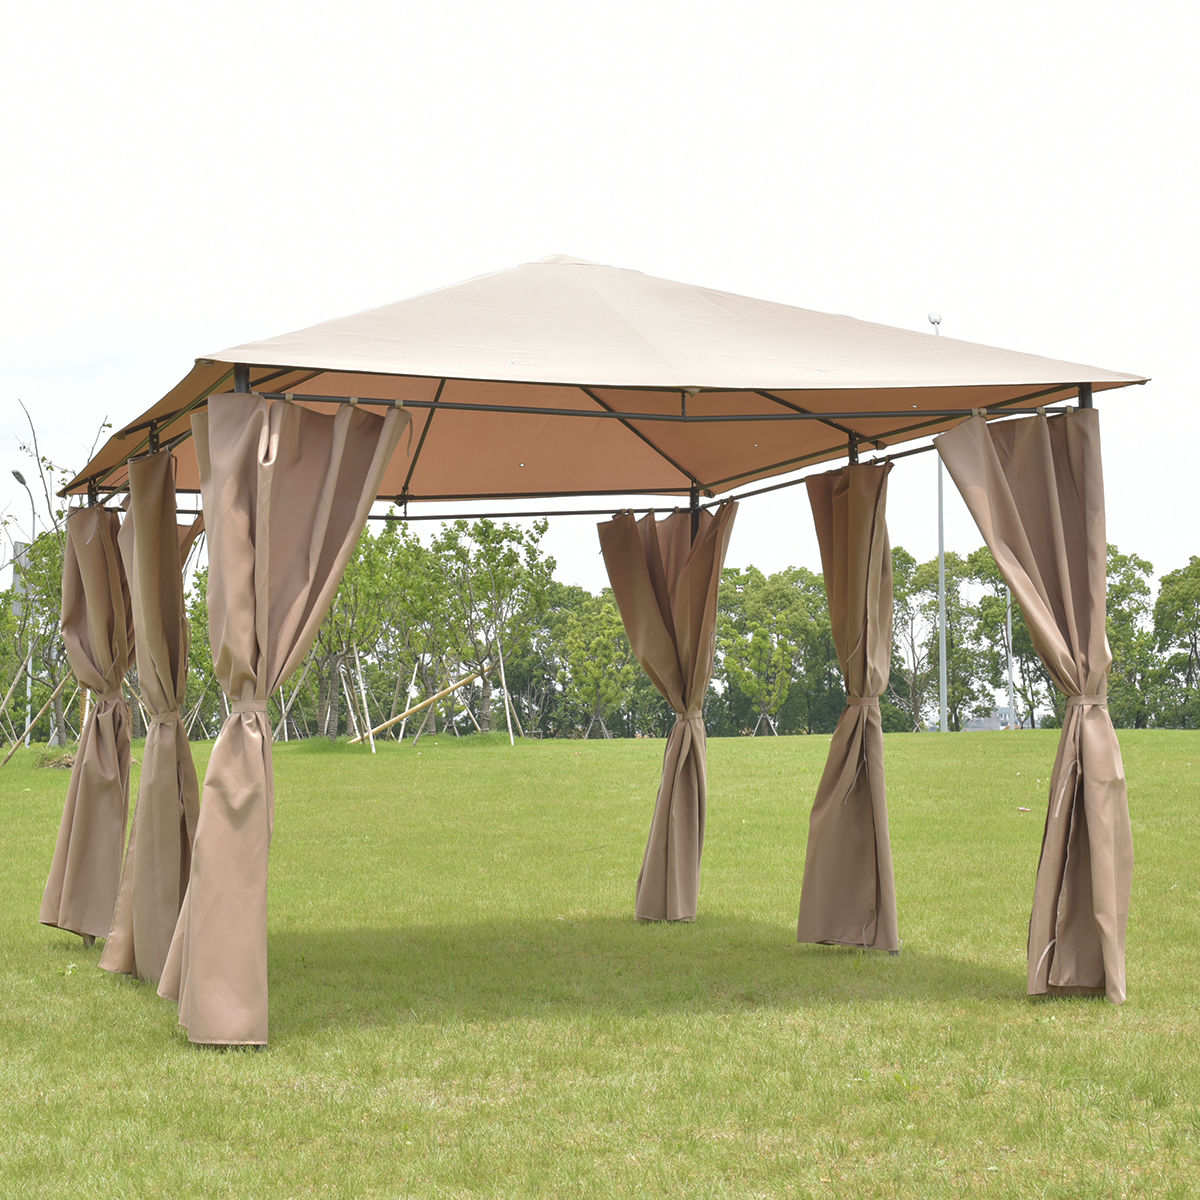 Costway Outdoor 10'x13' Gazebo Canopy Tent Shelter Awning Steel Frame W Walls Brown by Costway